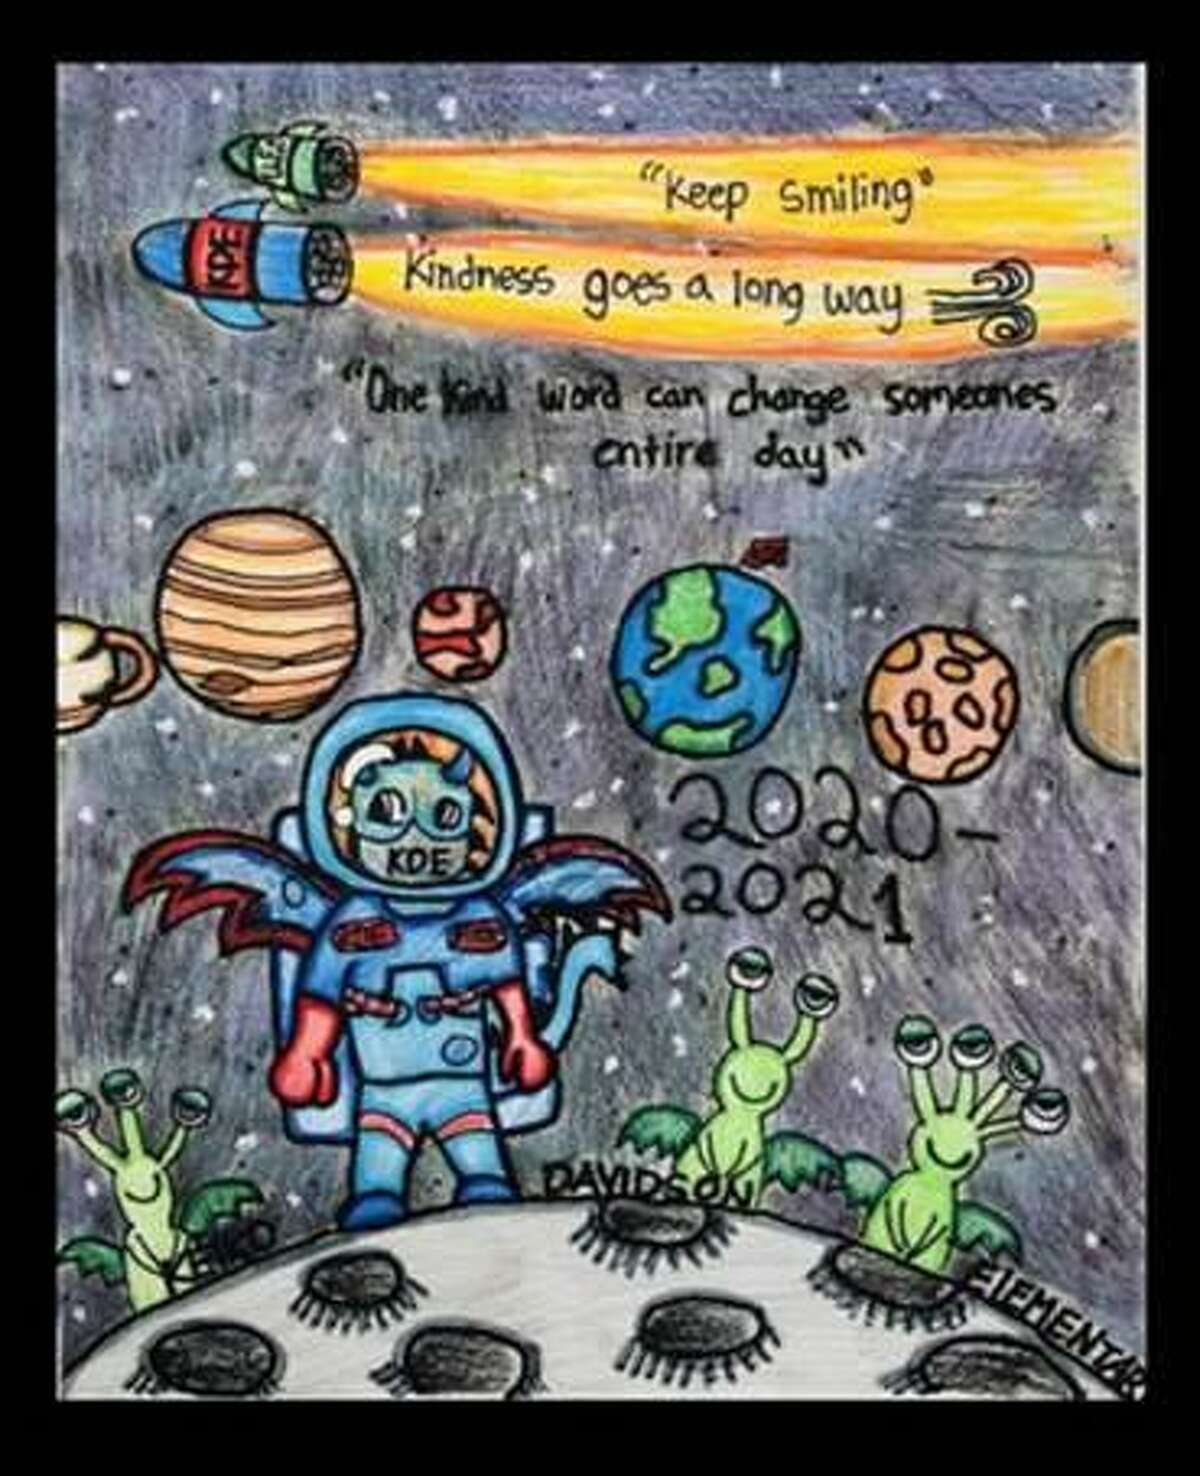 """Davidson Elementary fifth grader Nico Colosio's drawing, """"One Kind Word Can Change Someone's Entire Day,"""" is part of more than 500 artworks created by Katy Independent School District students and available to view in the district's Virtual Student Art Gallery."""